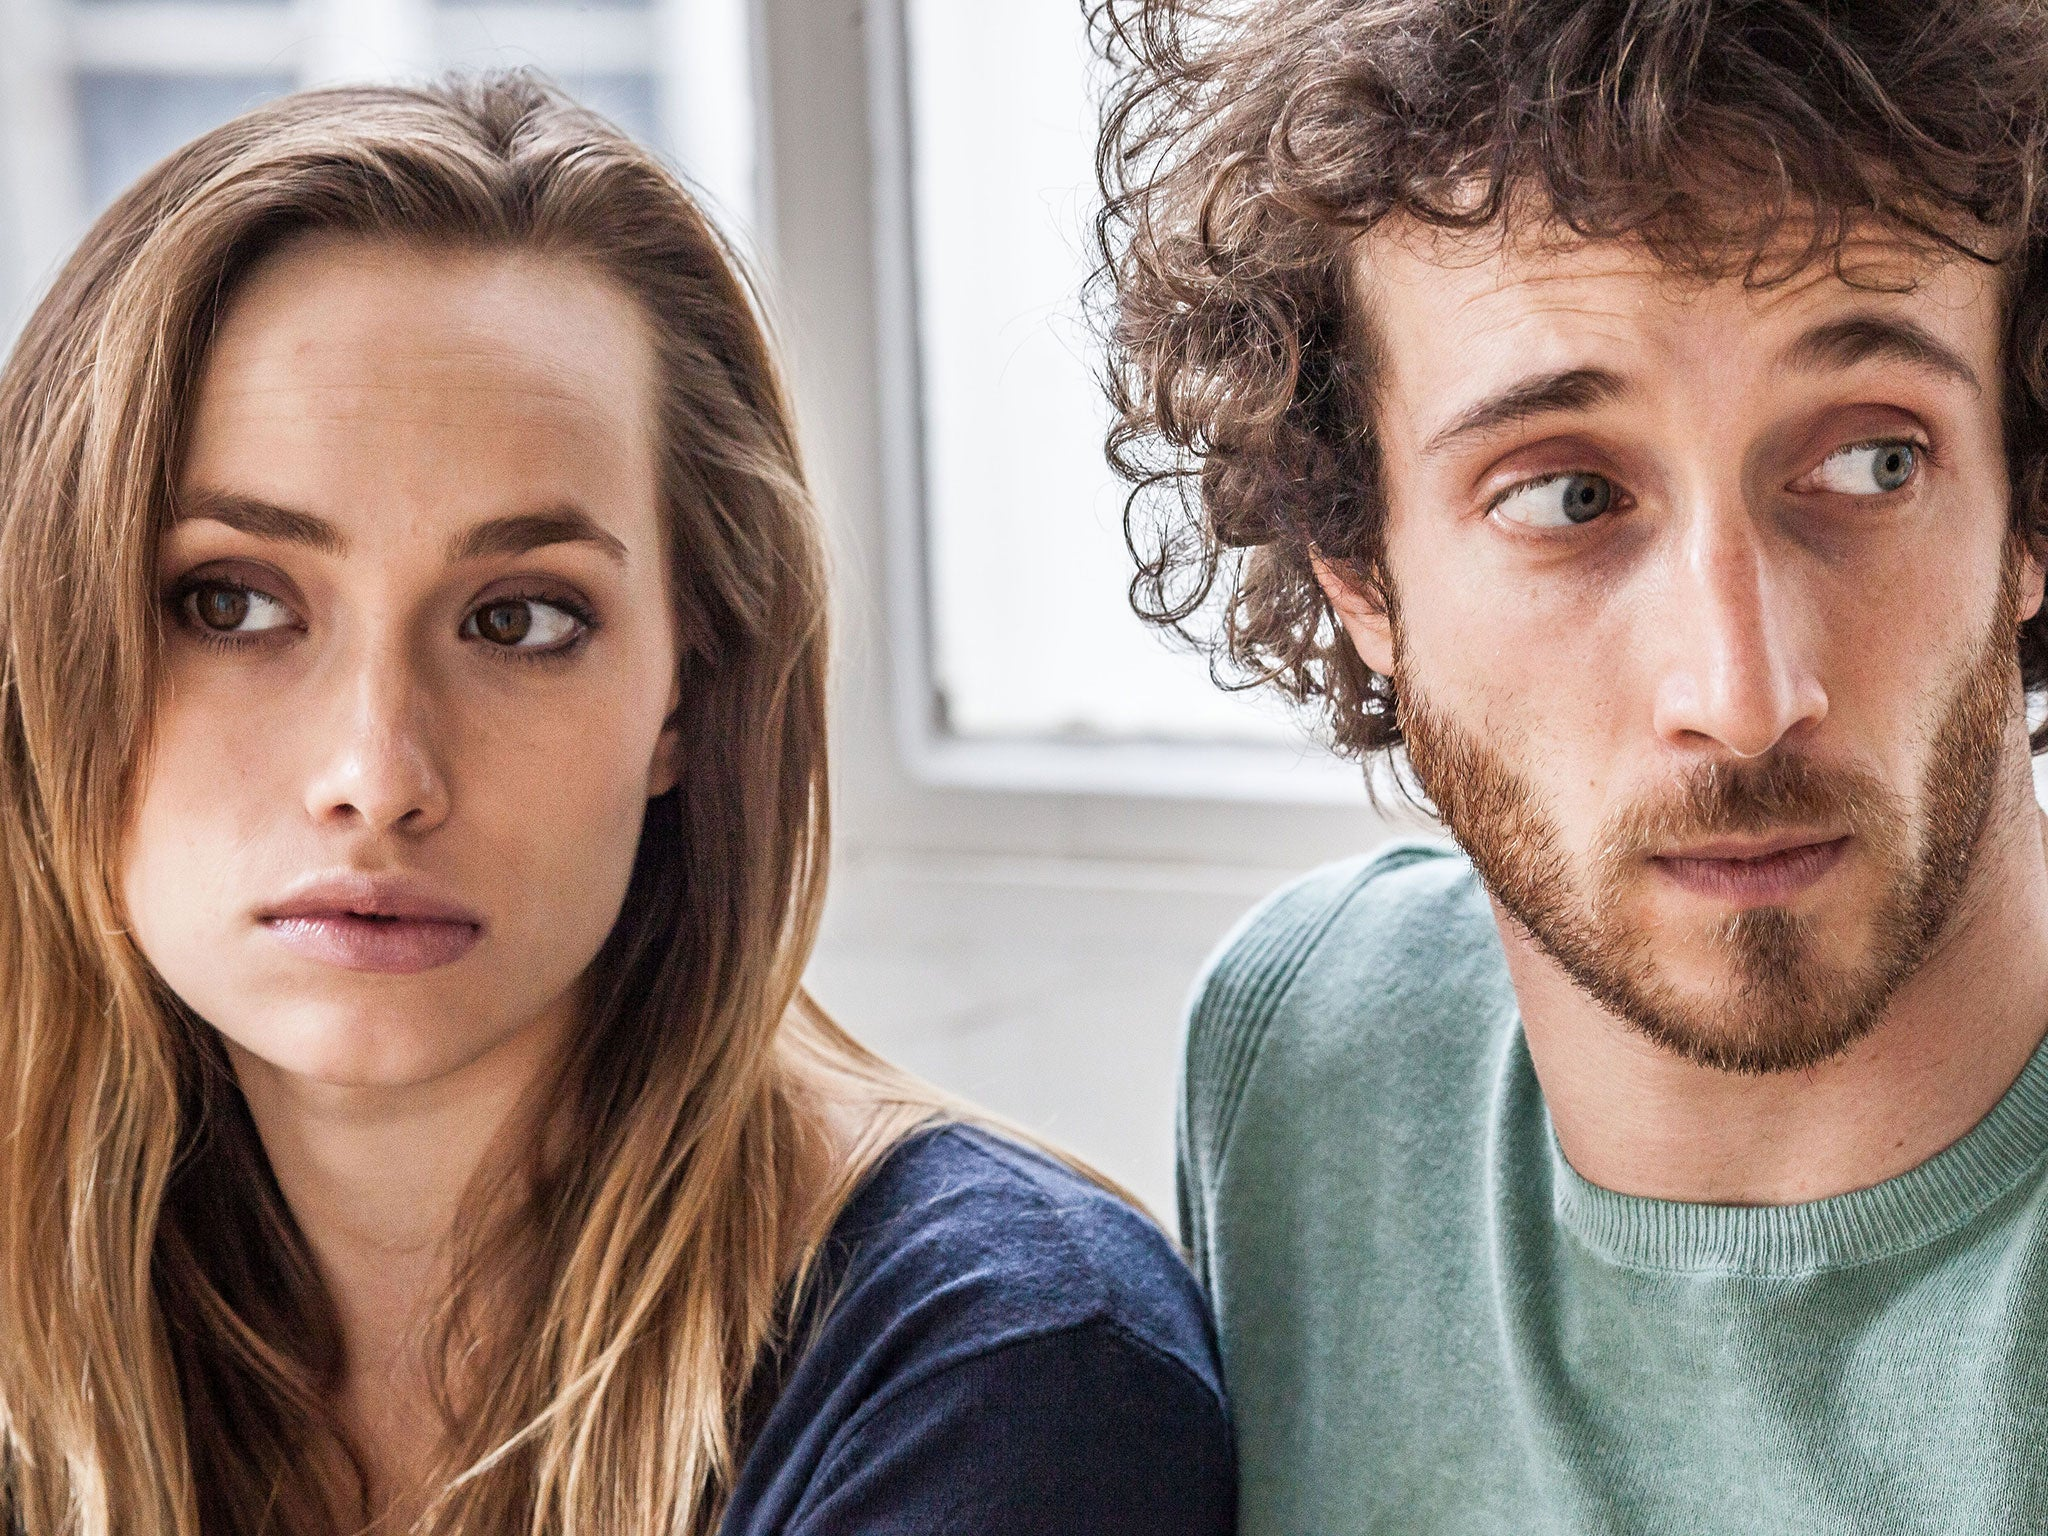 The worst ways to be broken up with: From having a big forehead to being 'too perfect'